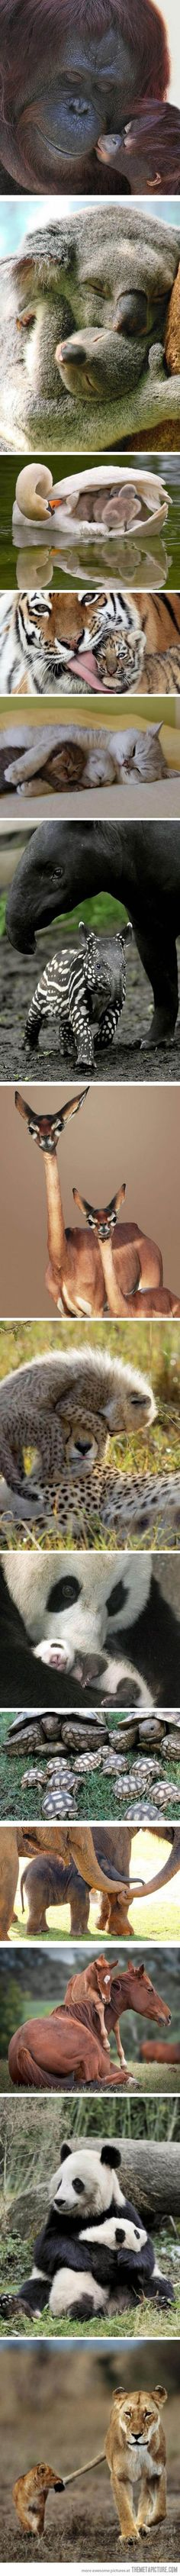 Family portraits in the animal kingdom…